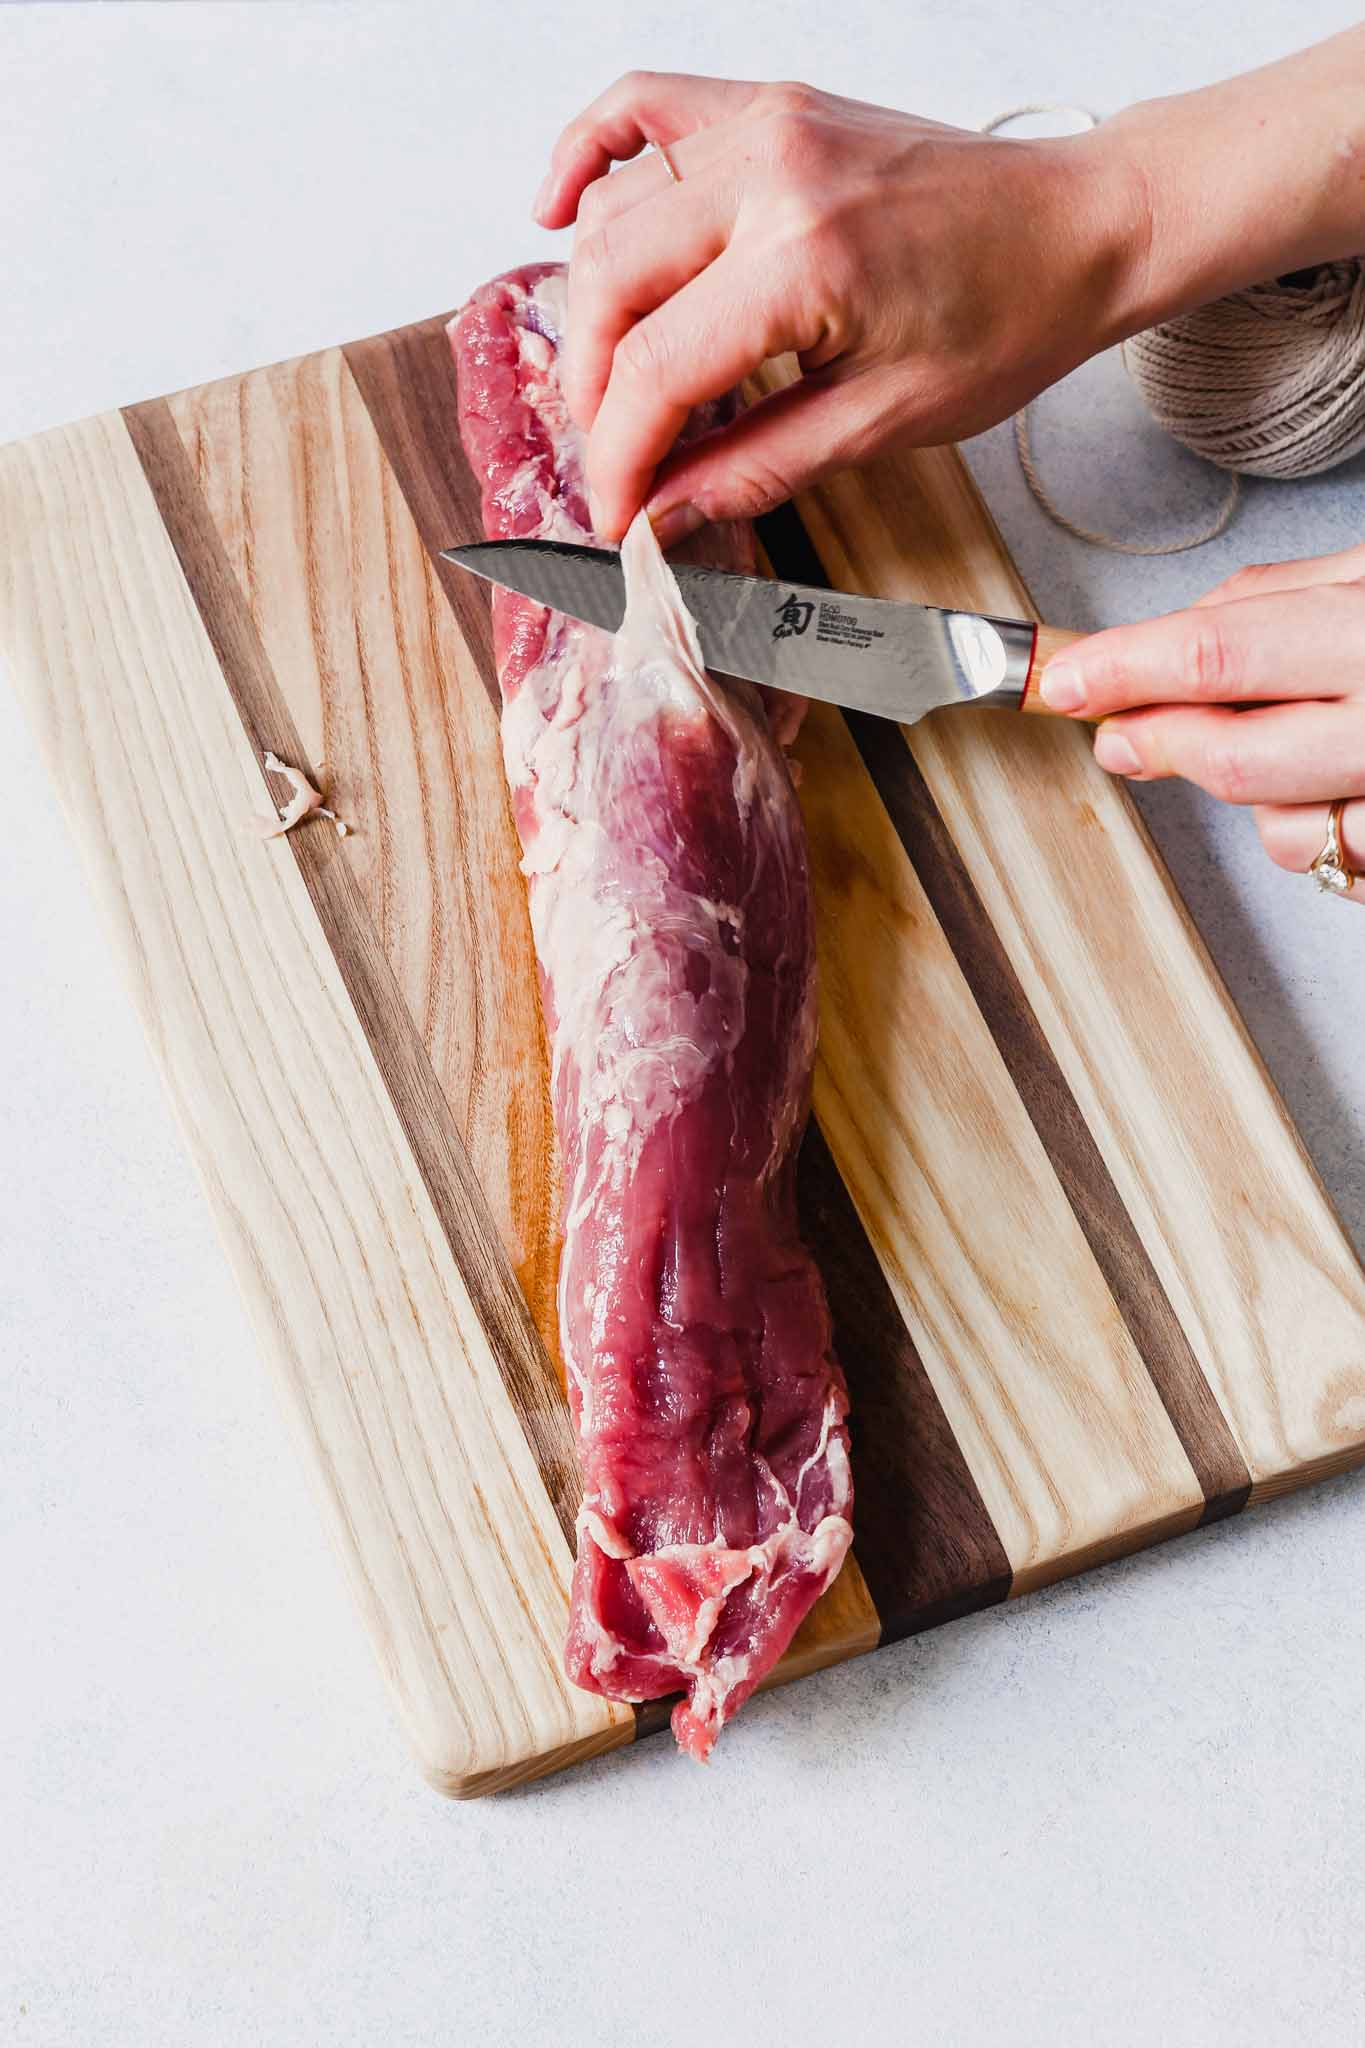 Photograph of someone trimming the silver skin from a pork tenderloin